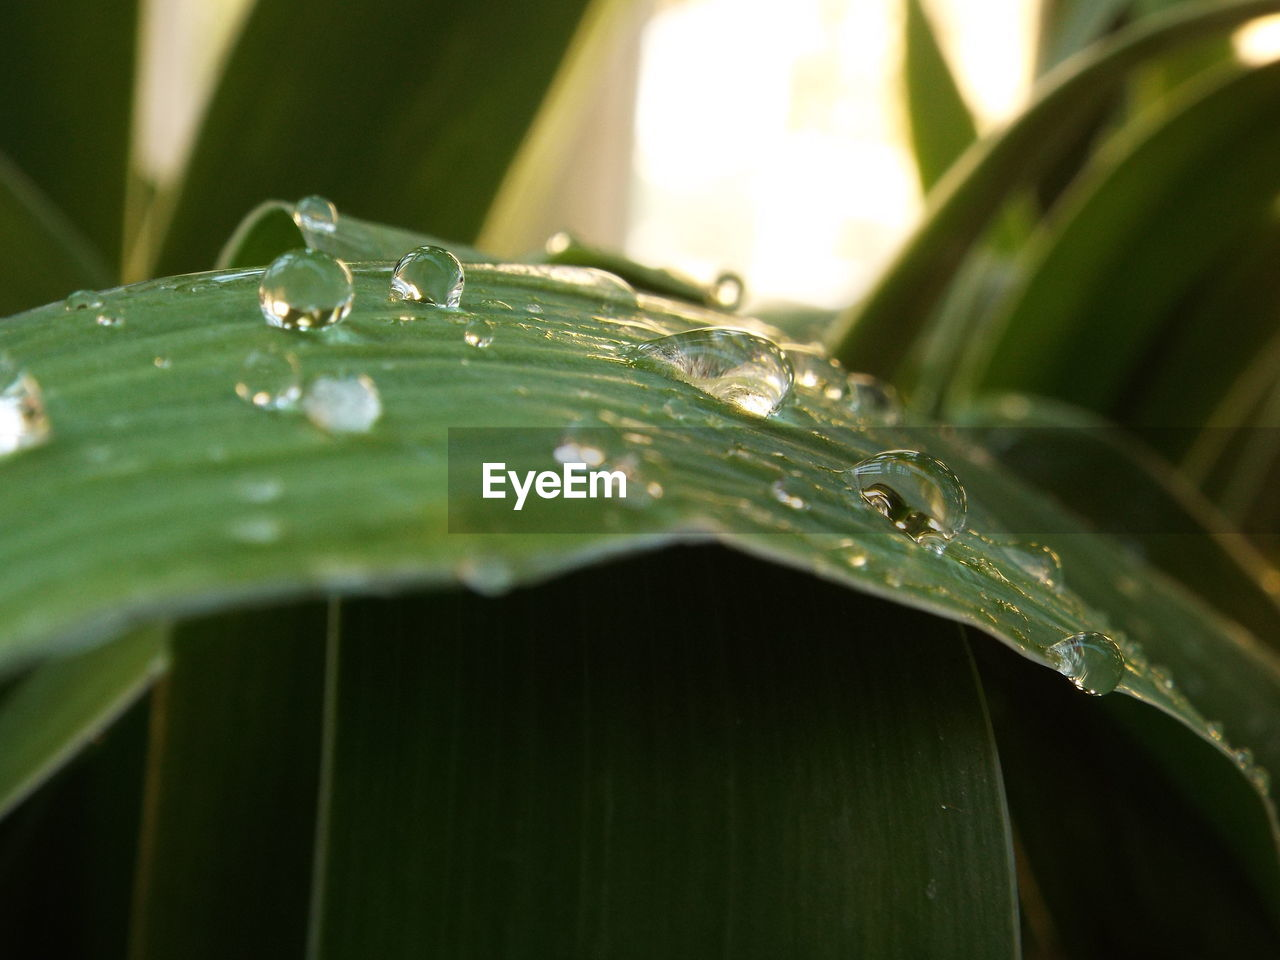 CLOSE-UP OF WATER DROPS ON PLANT LEAF